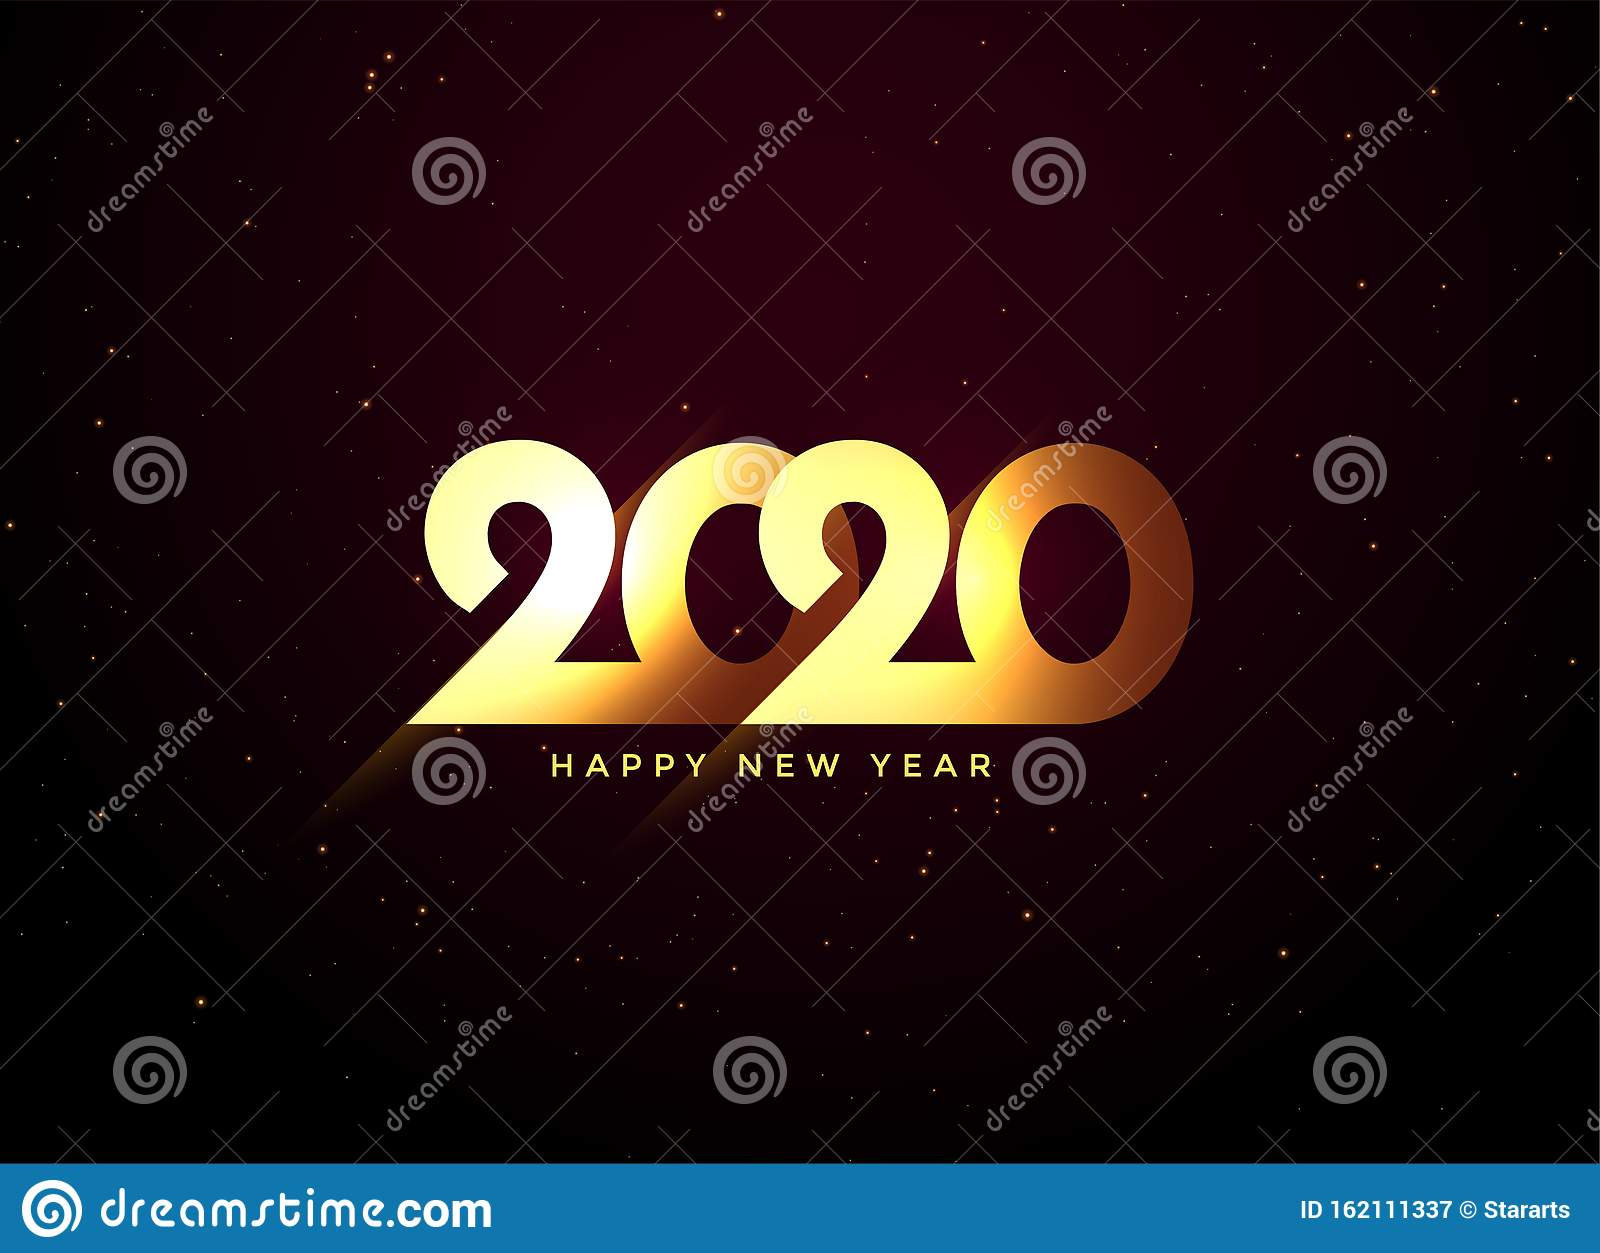 Shiny golden 2020 happy new year background design